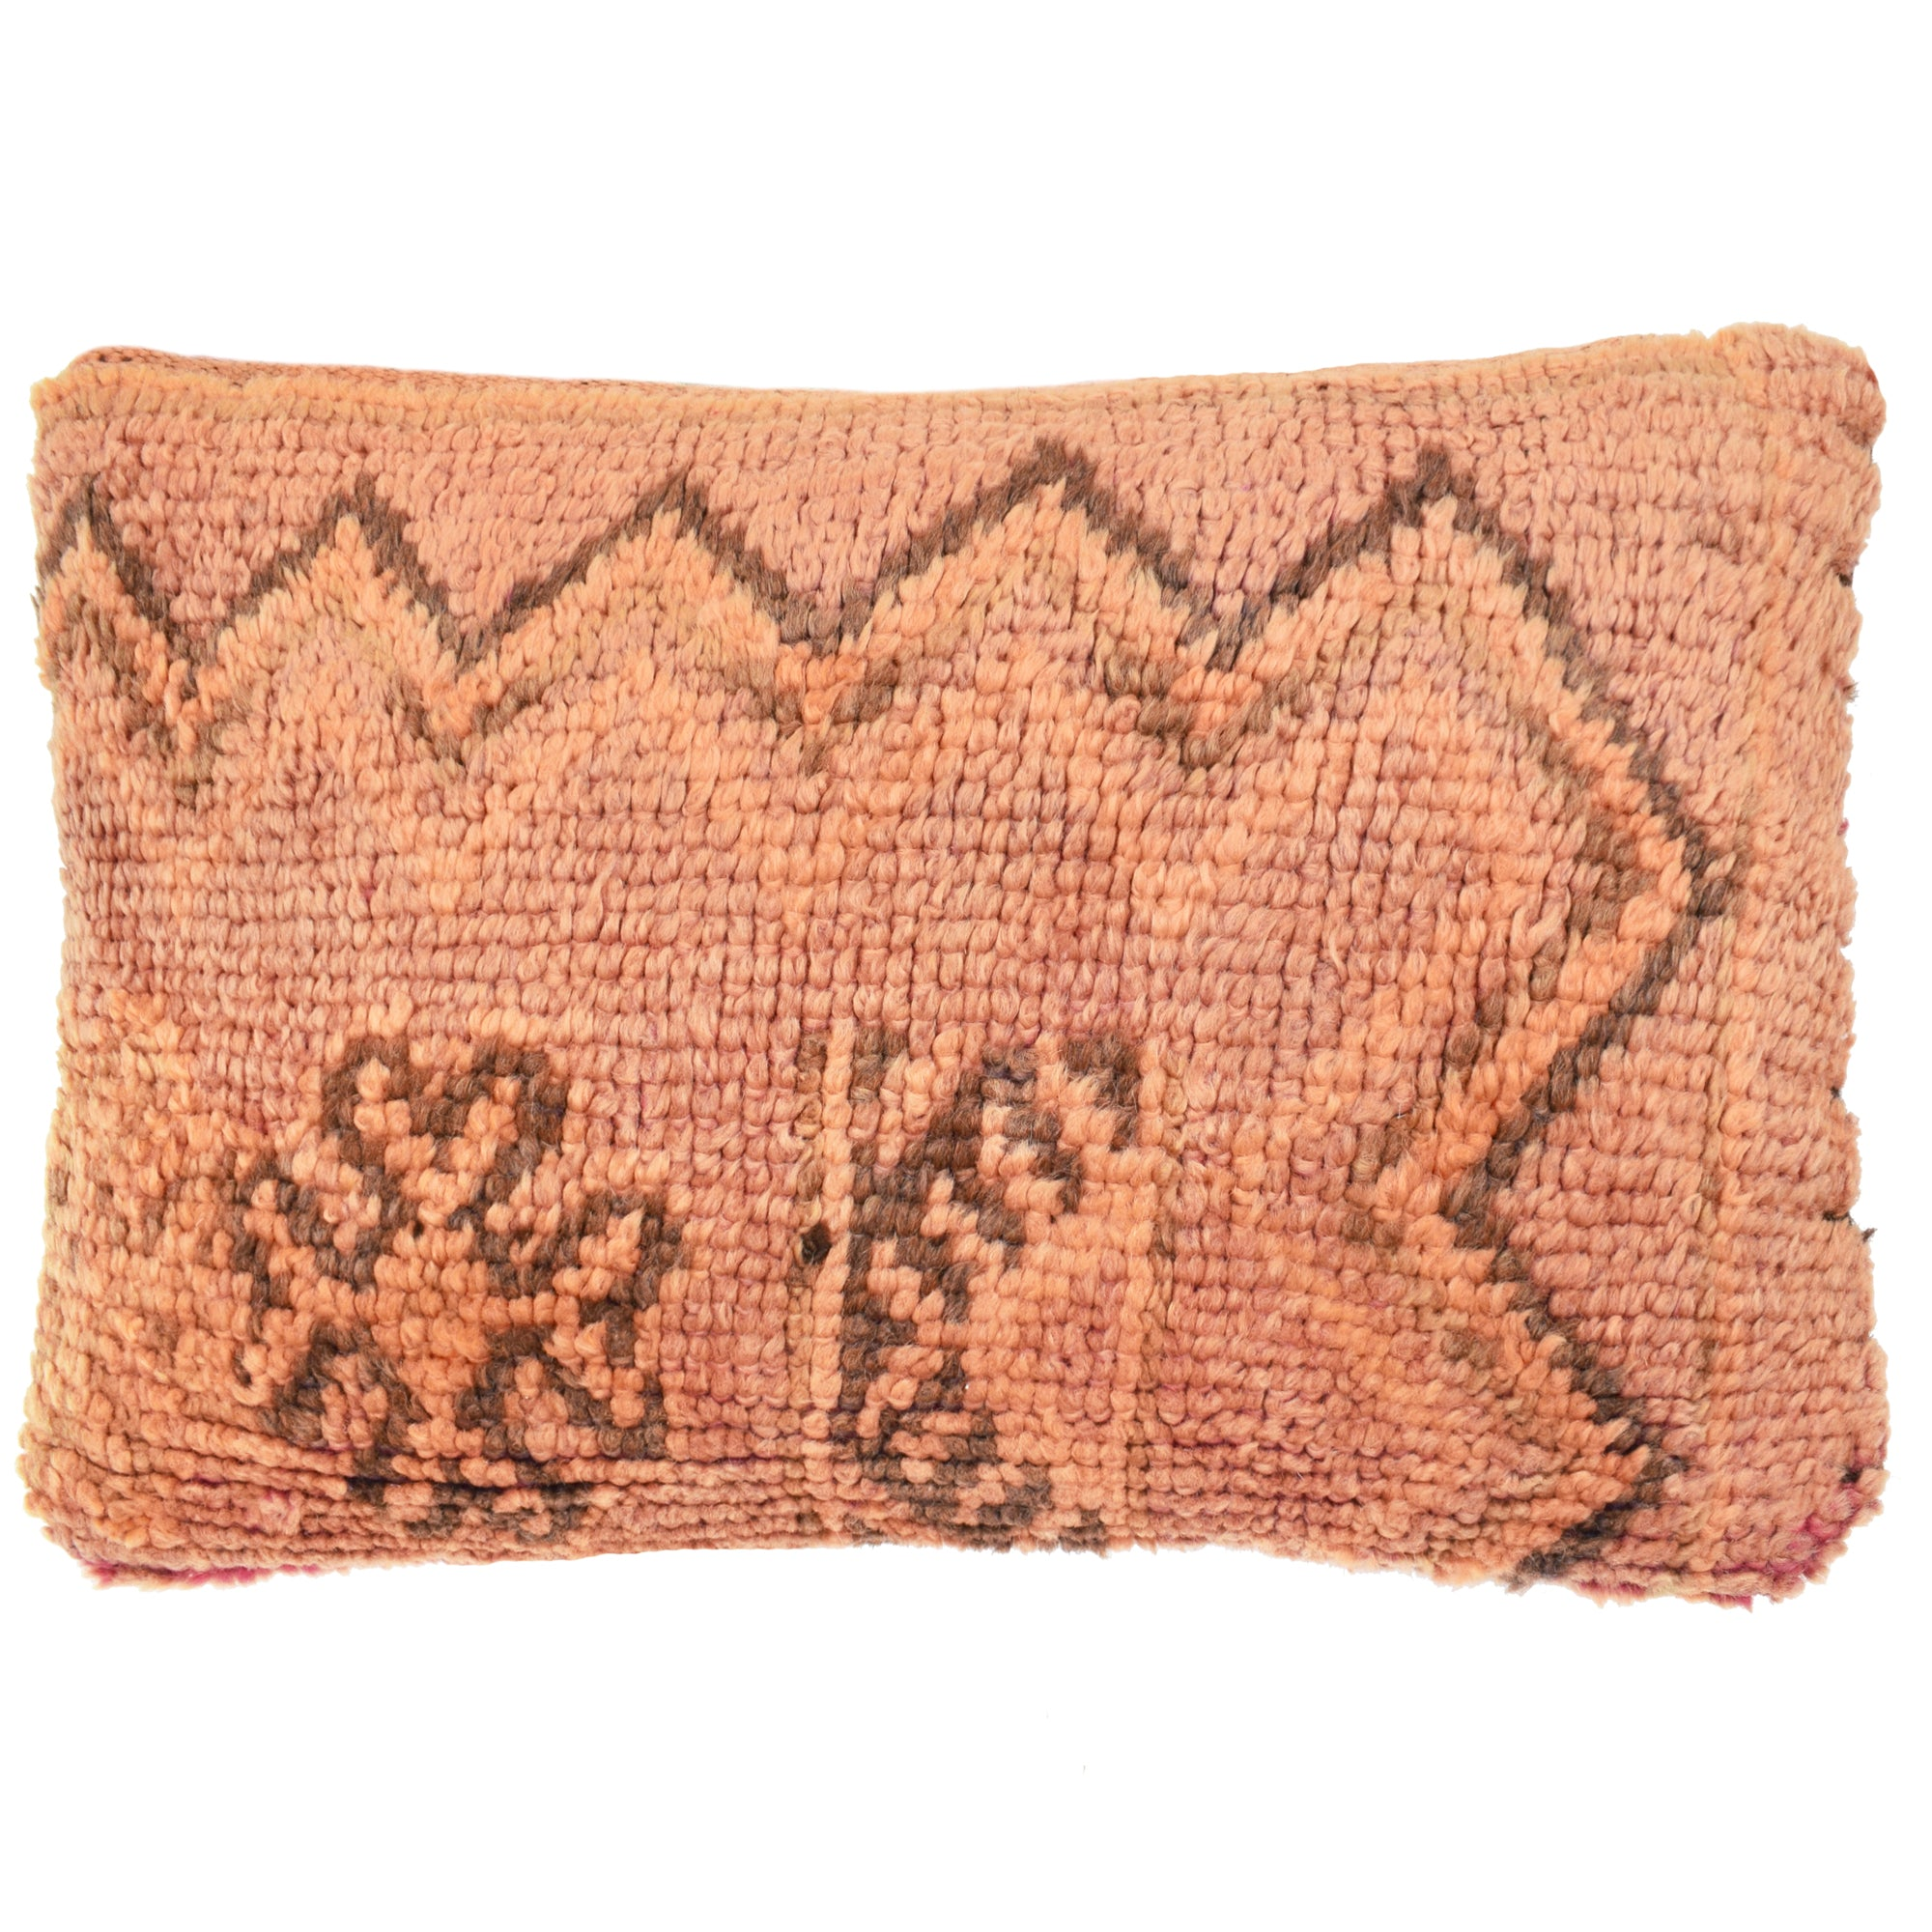 Vintage_Berber_Cushion_Ornage_Peach_Flower